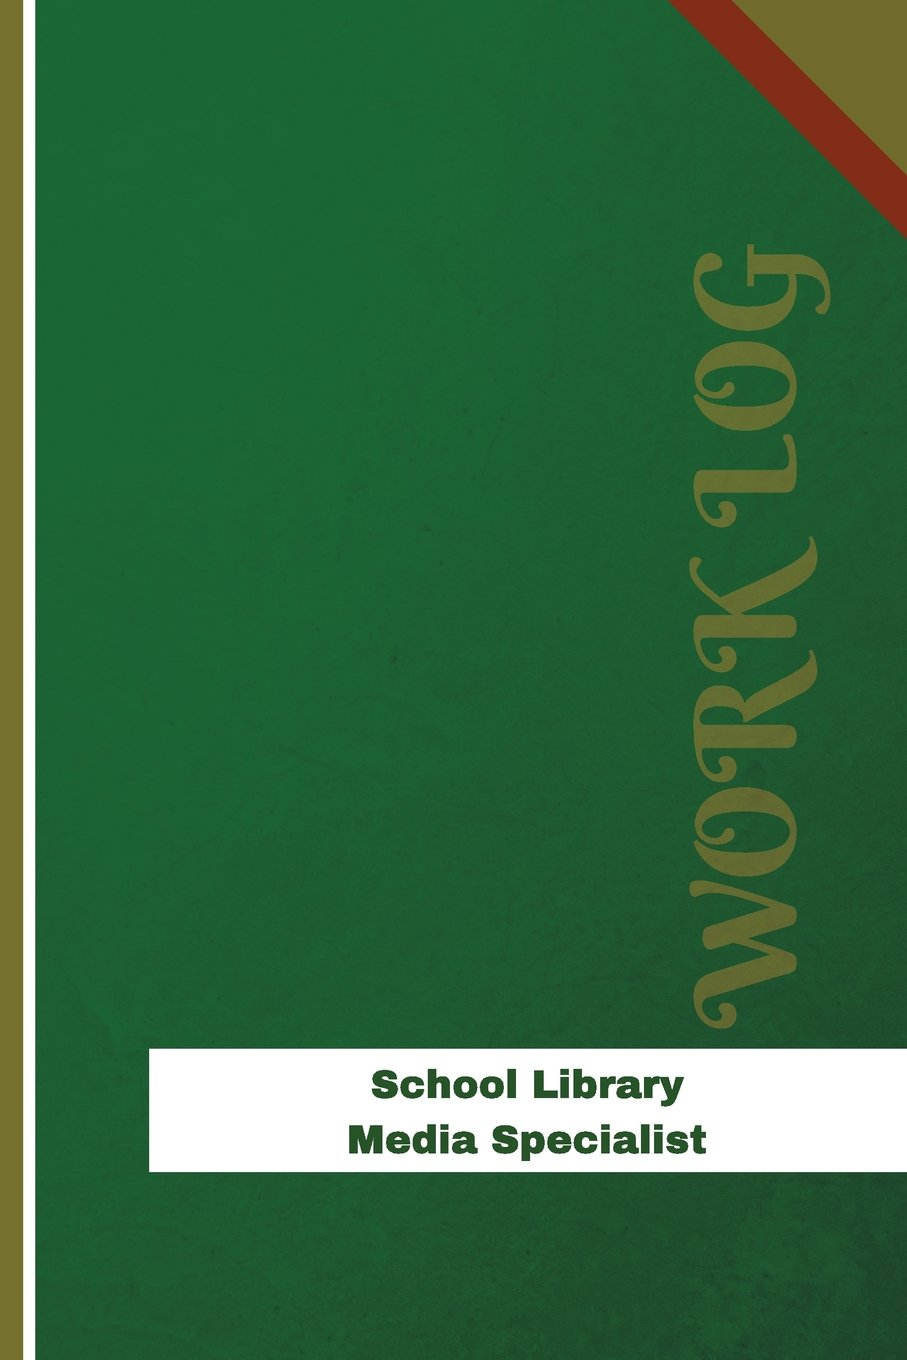 School Library Media Specialist Work Log: Work Journal, Work Diary, Log - 126 pages, 6 x 9 inches (Orange Logs/Work Log) PDF